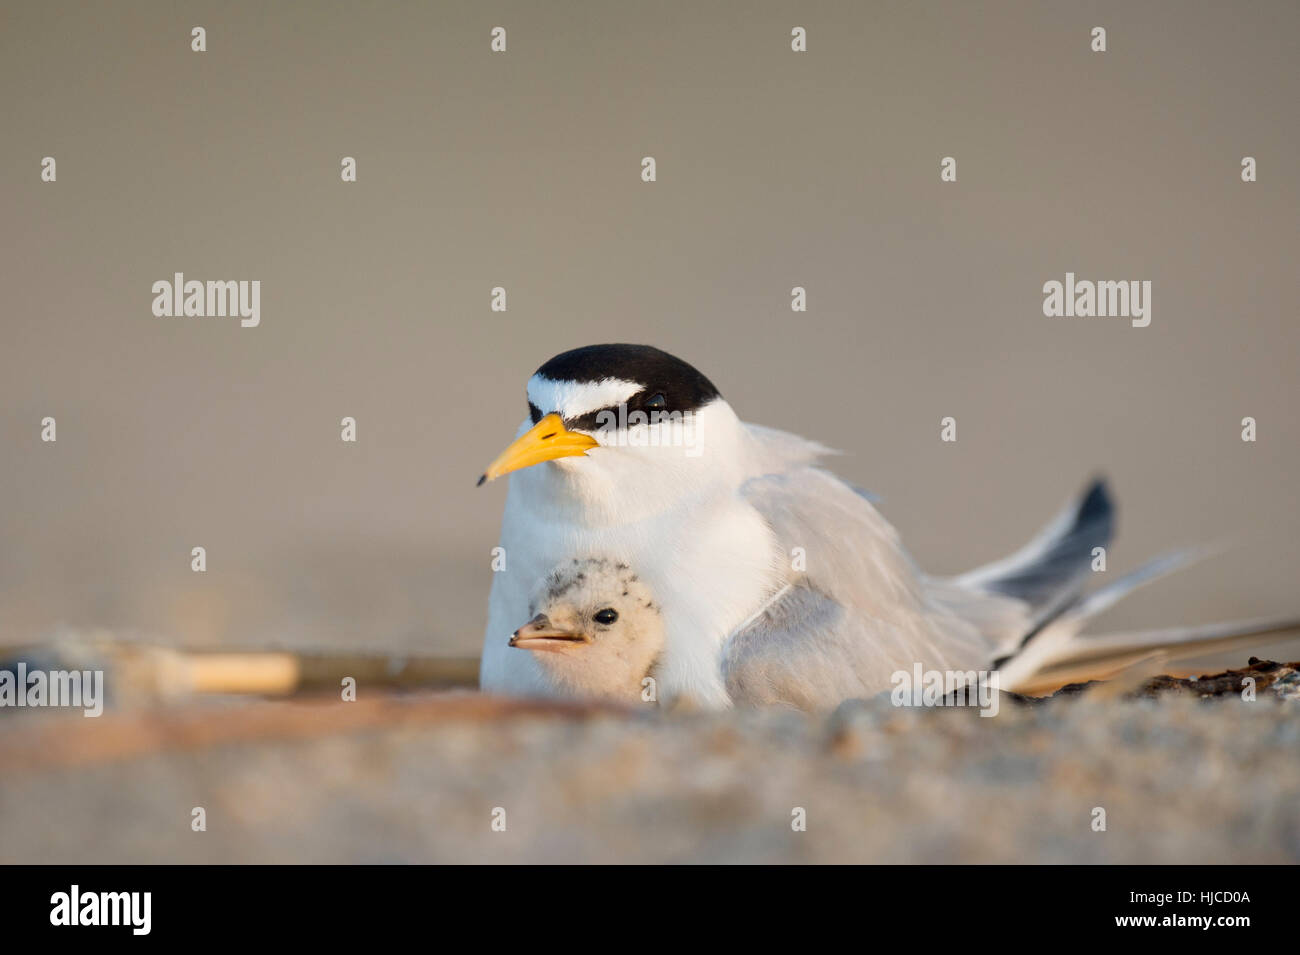 A Least Tern chick snuggles in close with its parent to stay safe on the open beach in the early morning sunlight. - Stock Image